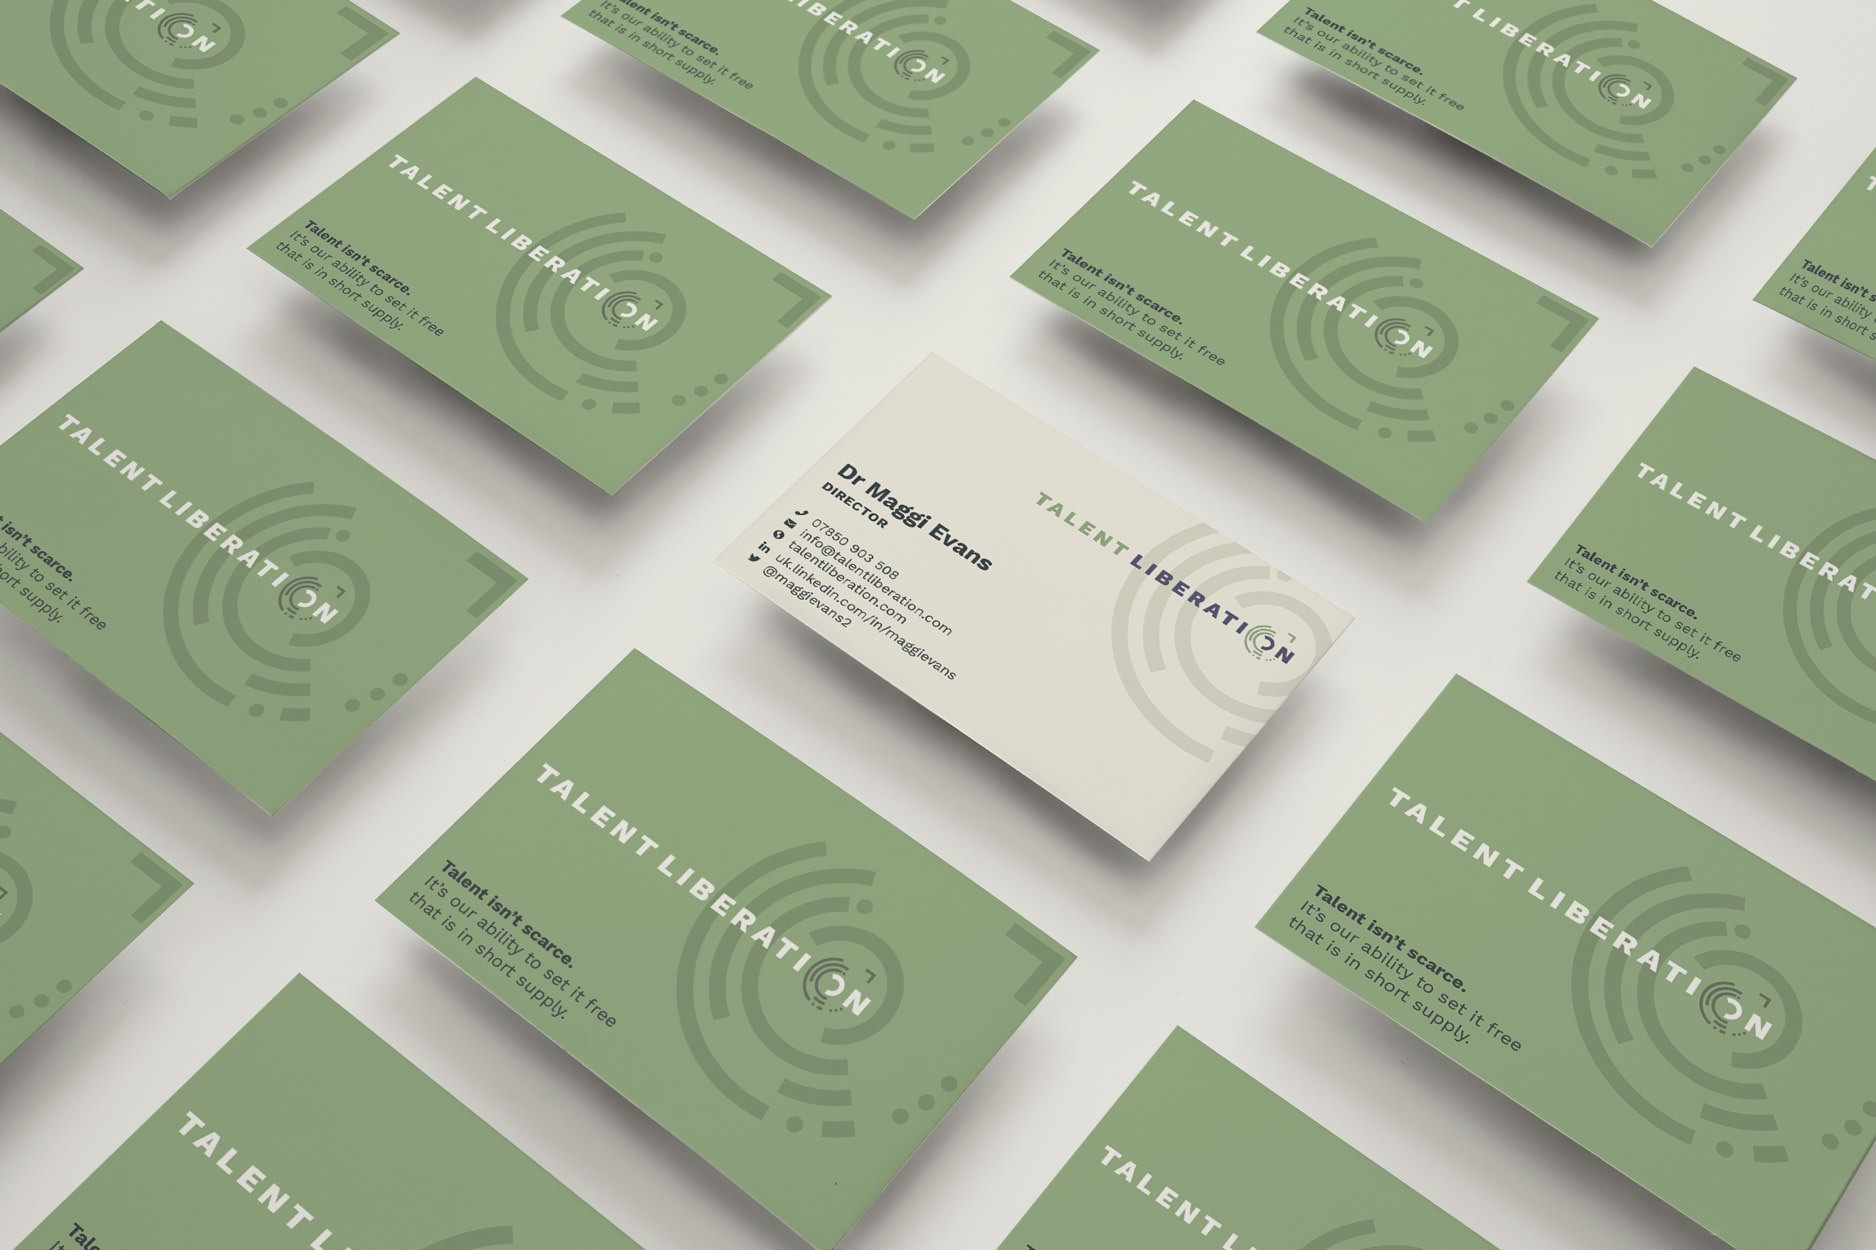 Business cards for Talent Liberation.